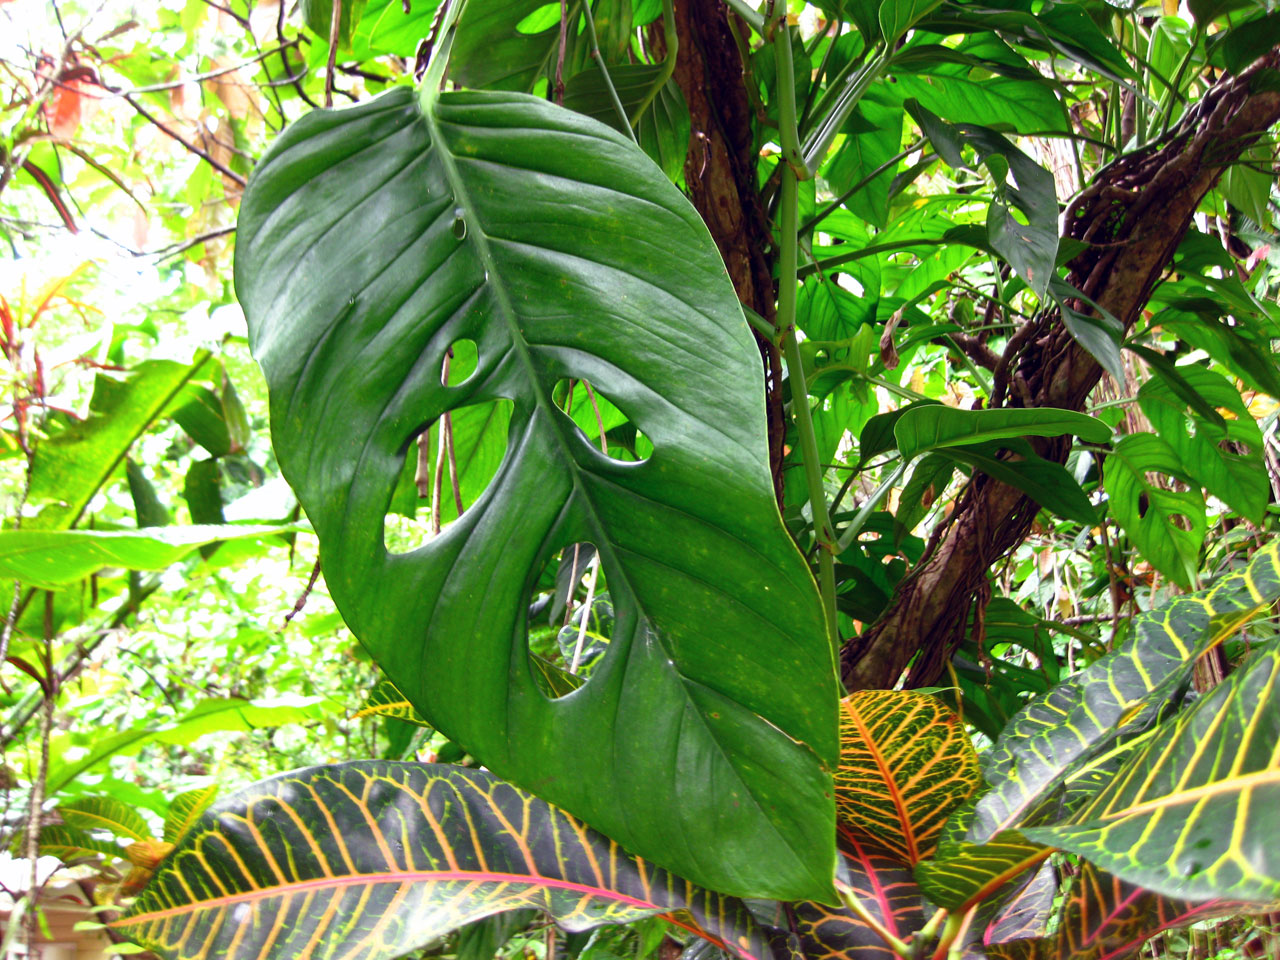 A leaf that looks like a face, Diamond Falls Botanical Gardens, Saint Lucia